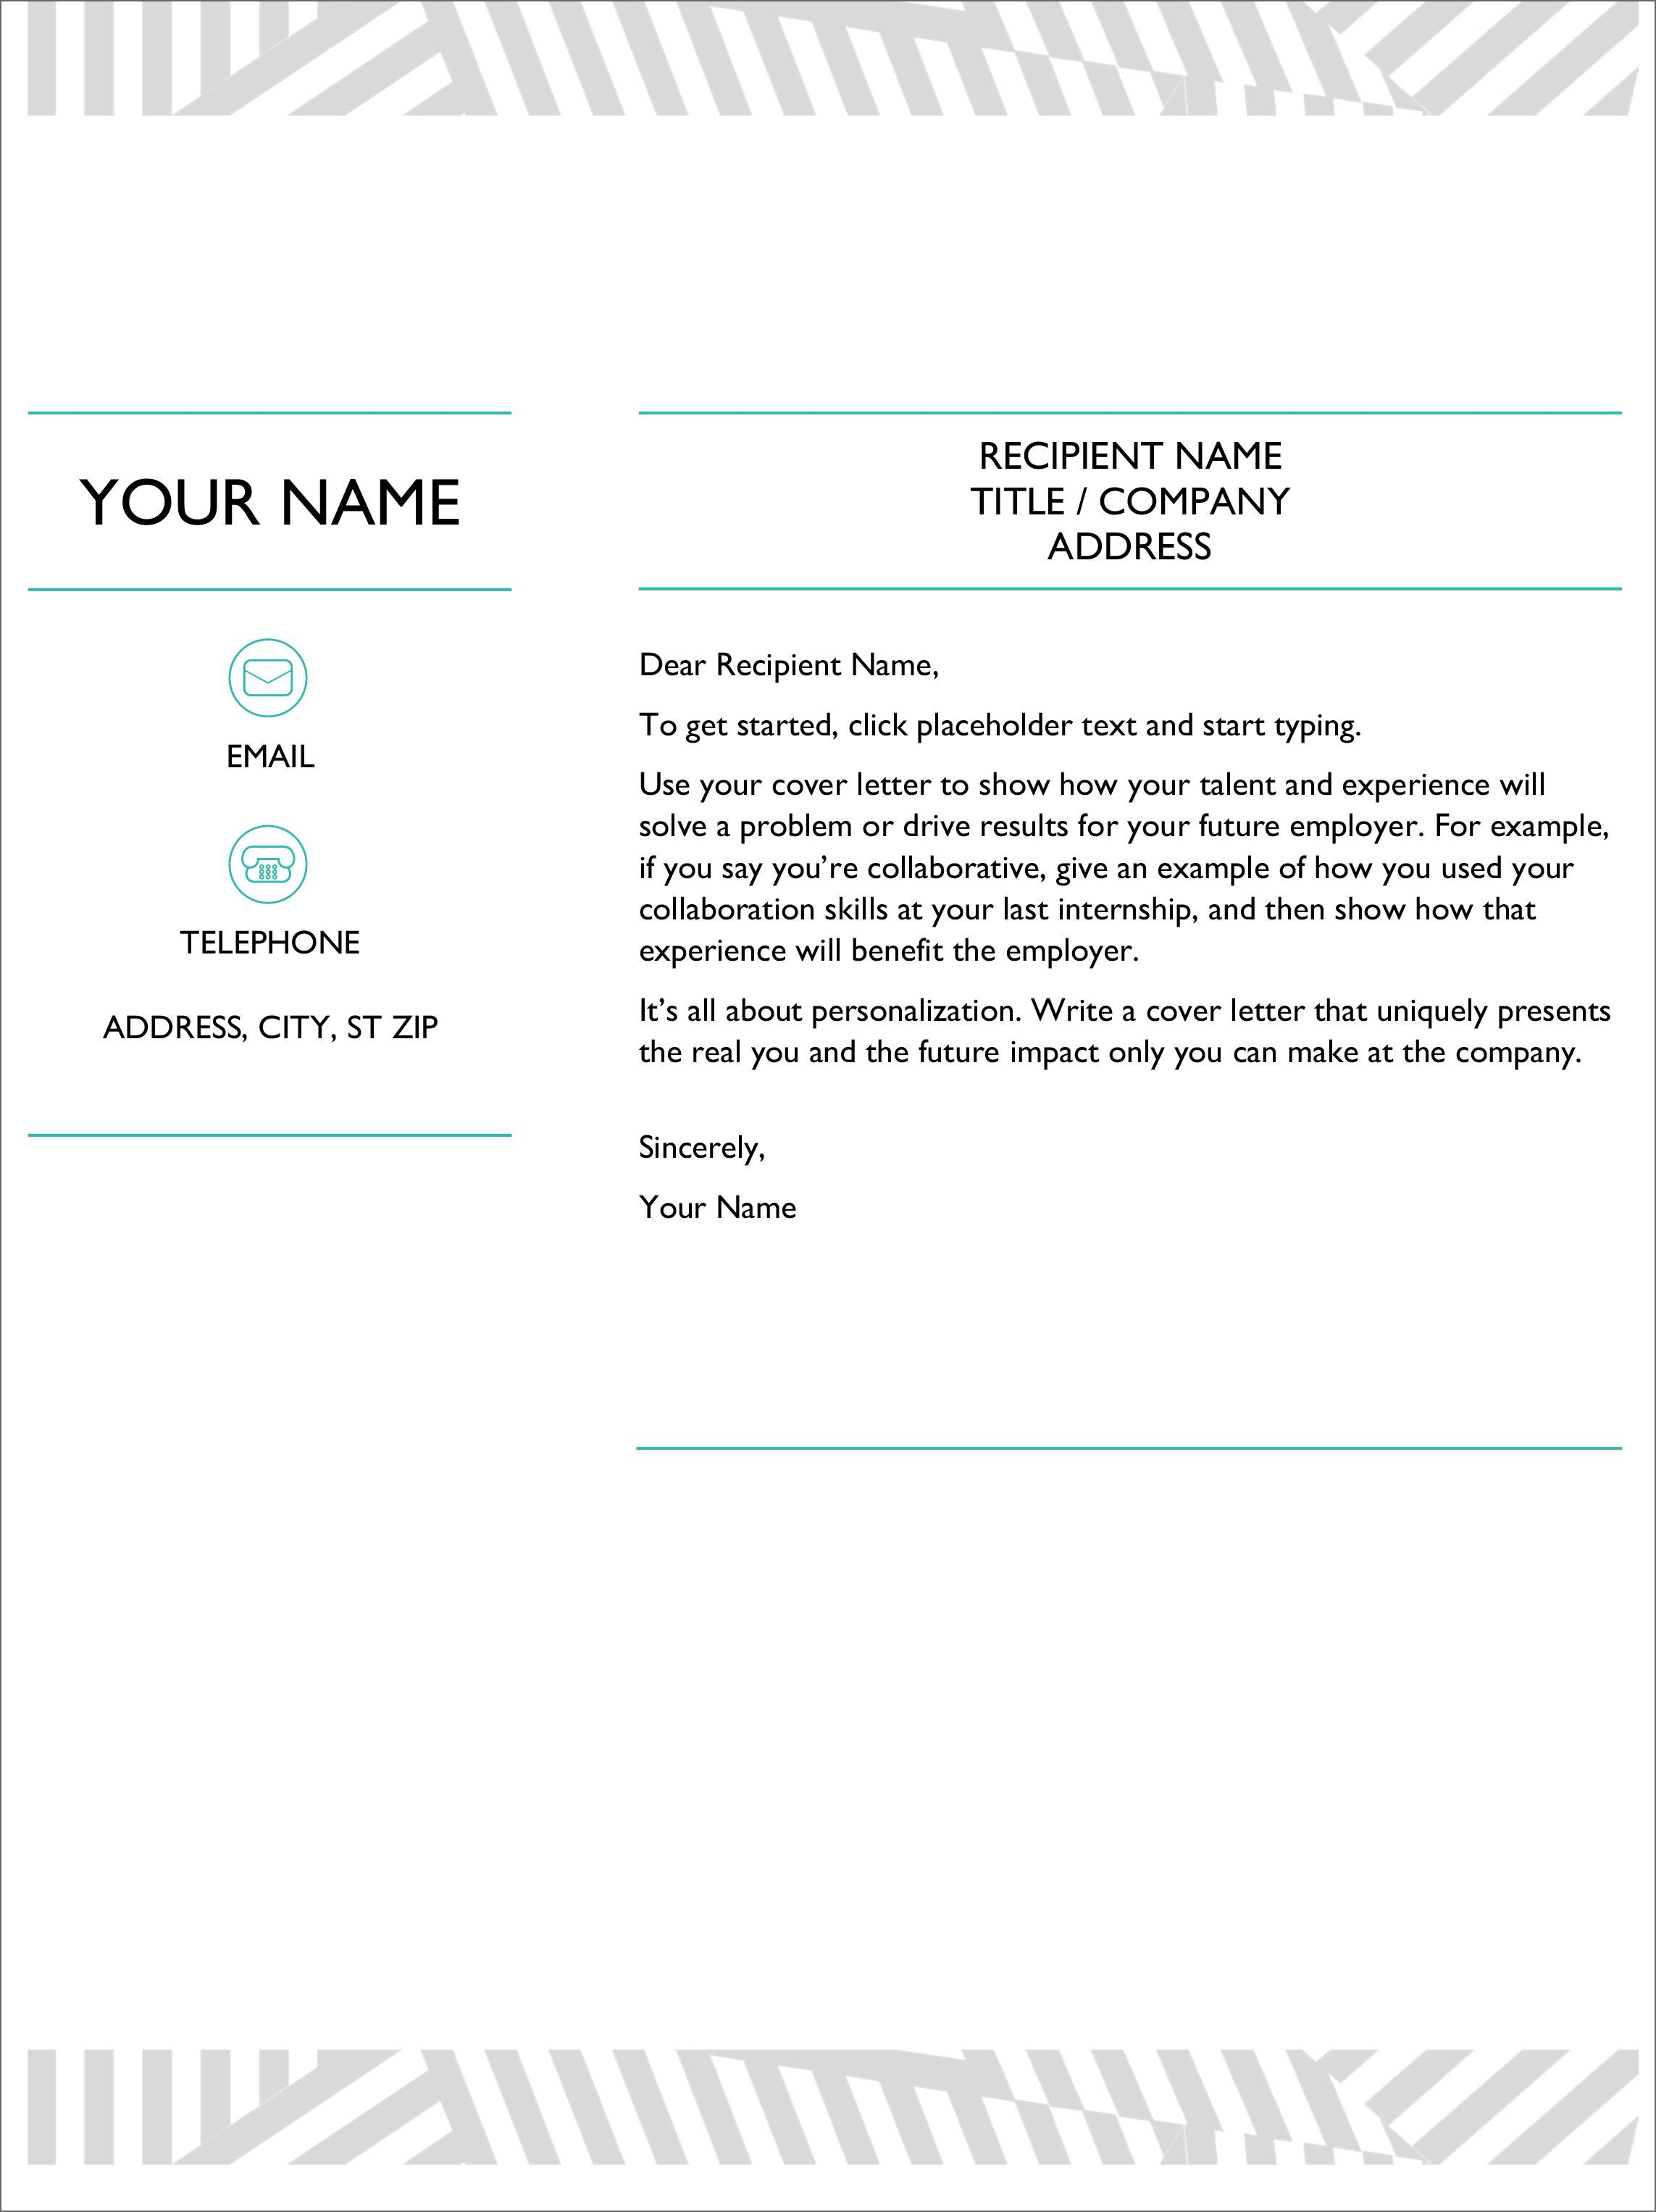 002 Fascinating Download Resume Cover Letter Sample Free Highest Clarity Full